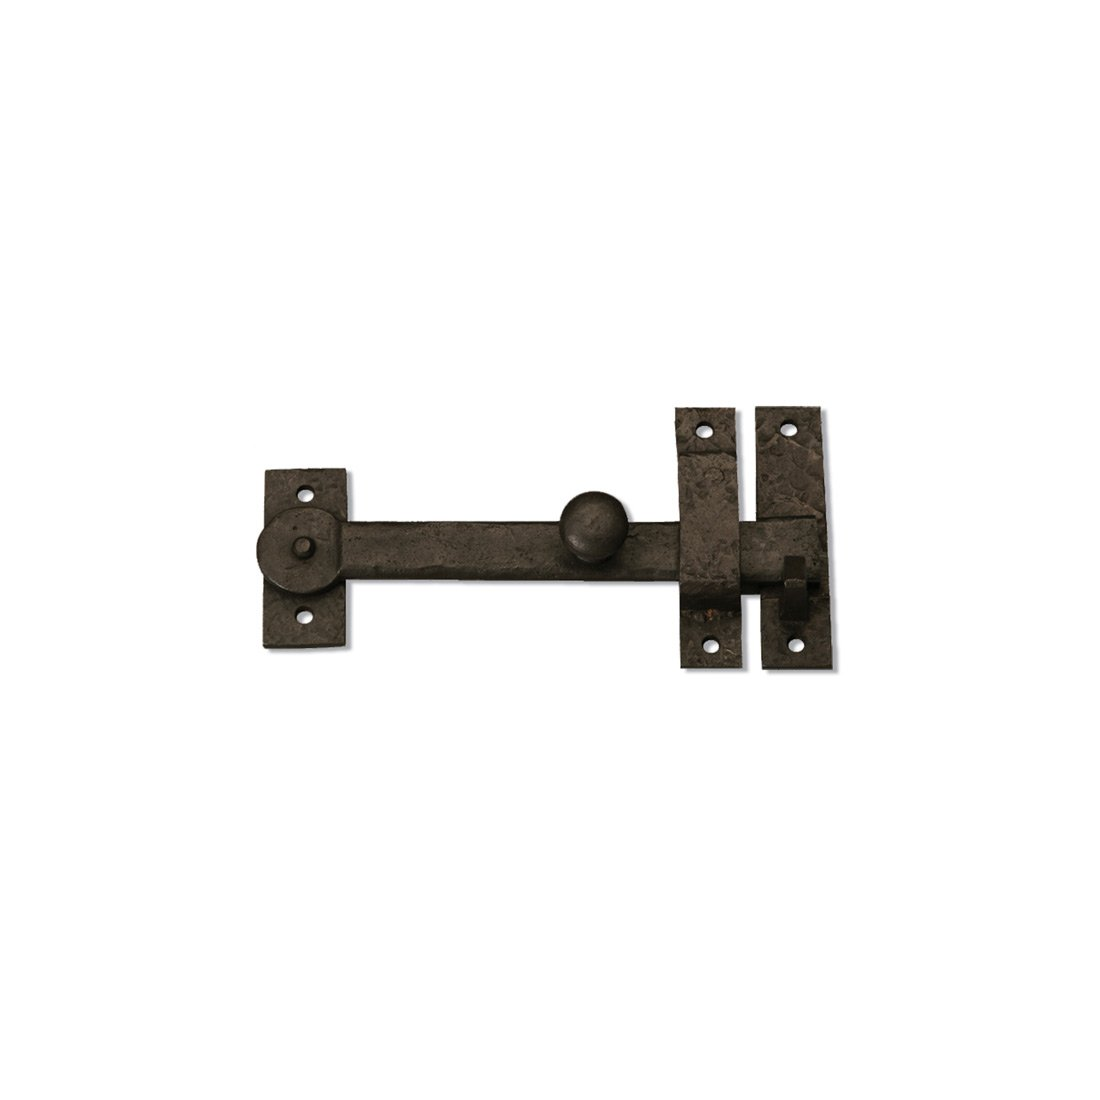 Coastal Bronze - 7.5'' Gate Drop Bar w/ Knob (Lever Latch) - Solid Bronze by Coastal Bronze